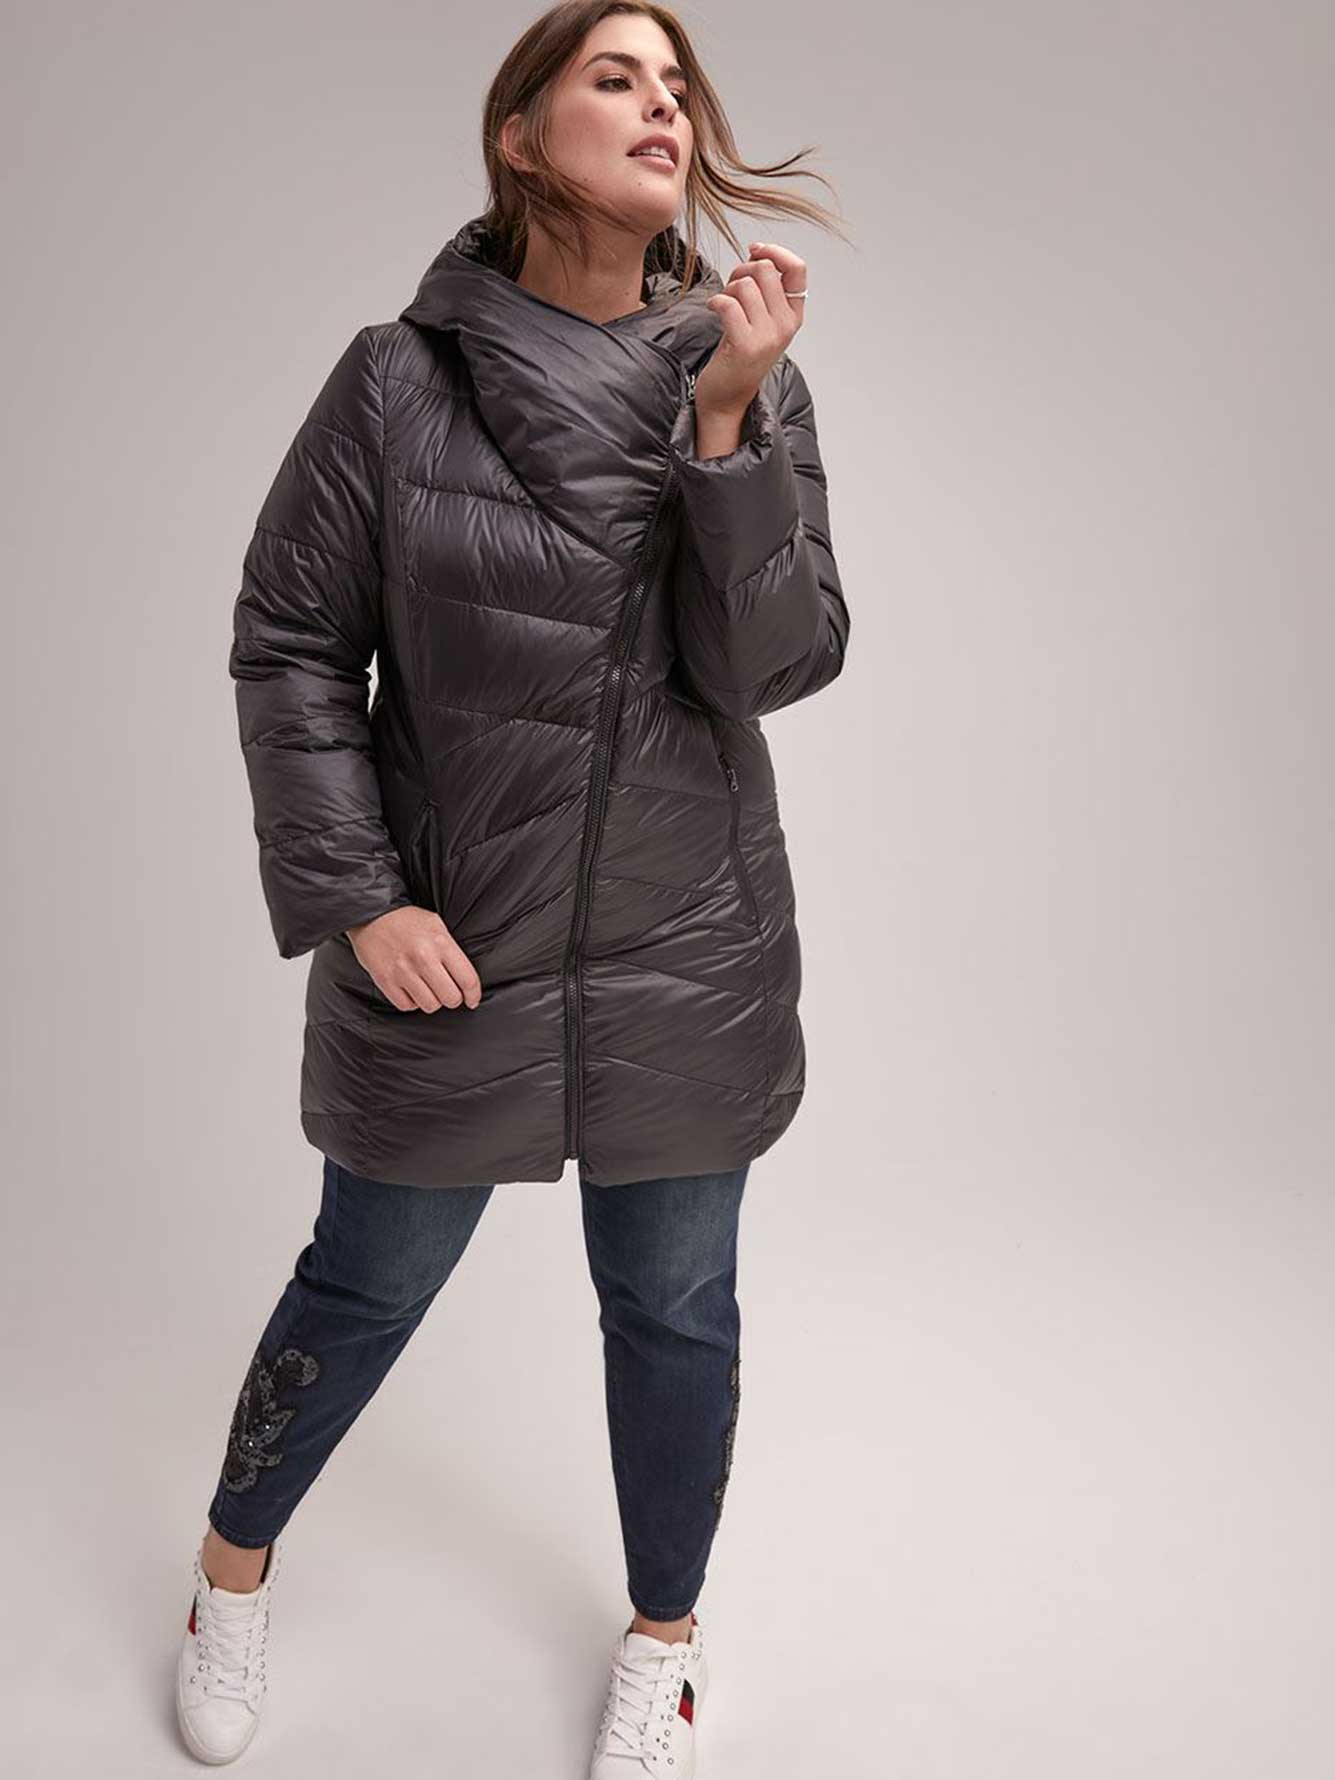 c4ad2558e97 Packable Down Coat with Asymmetrical Collar - LIVIK